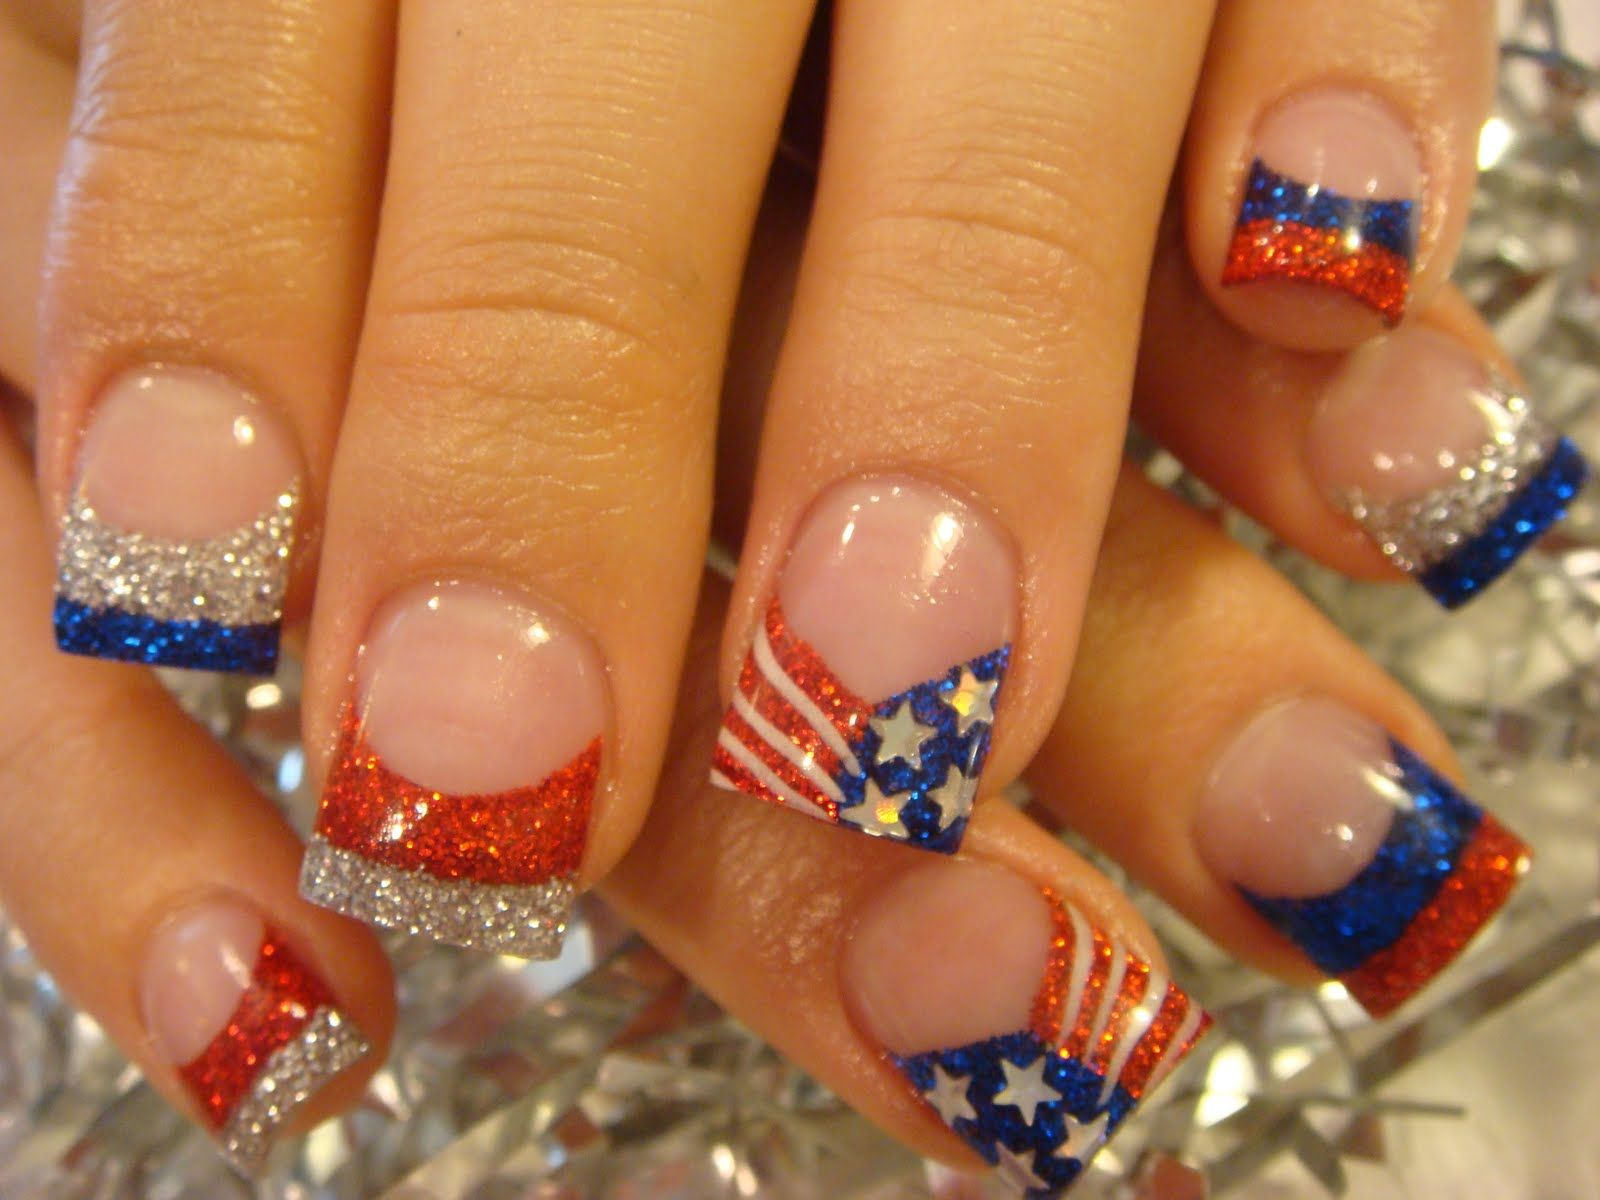 American Nail Art I Dont Think I Would Want To Do That Much Work